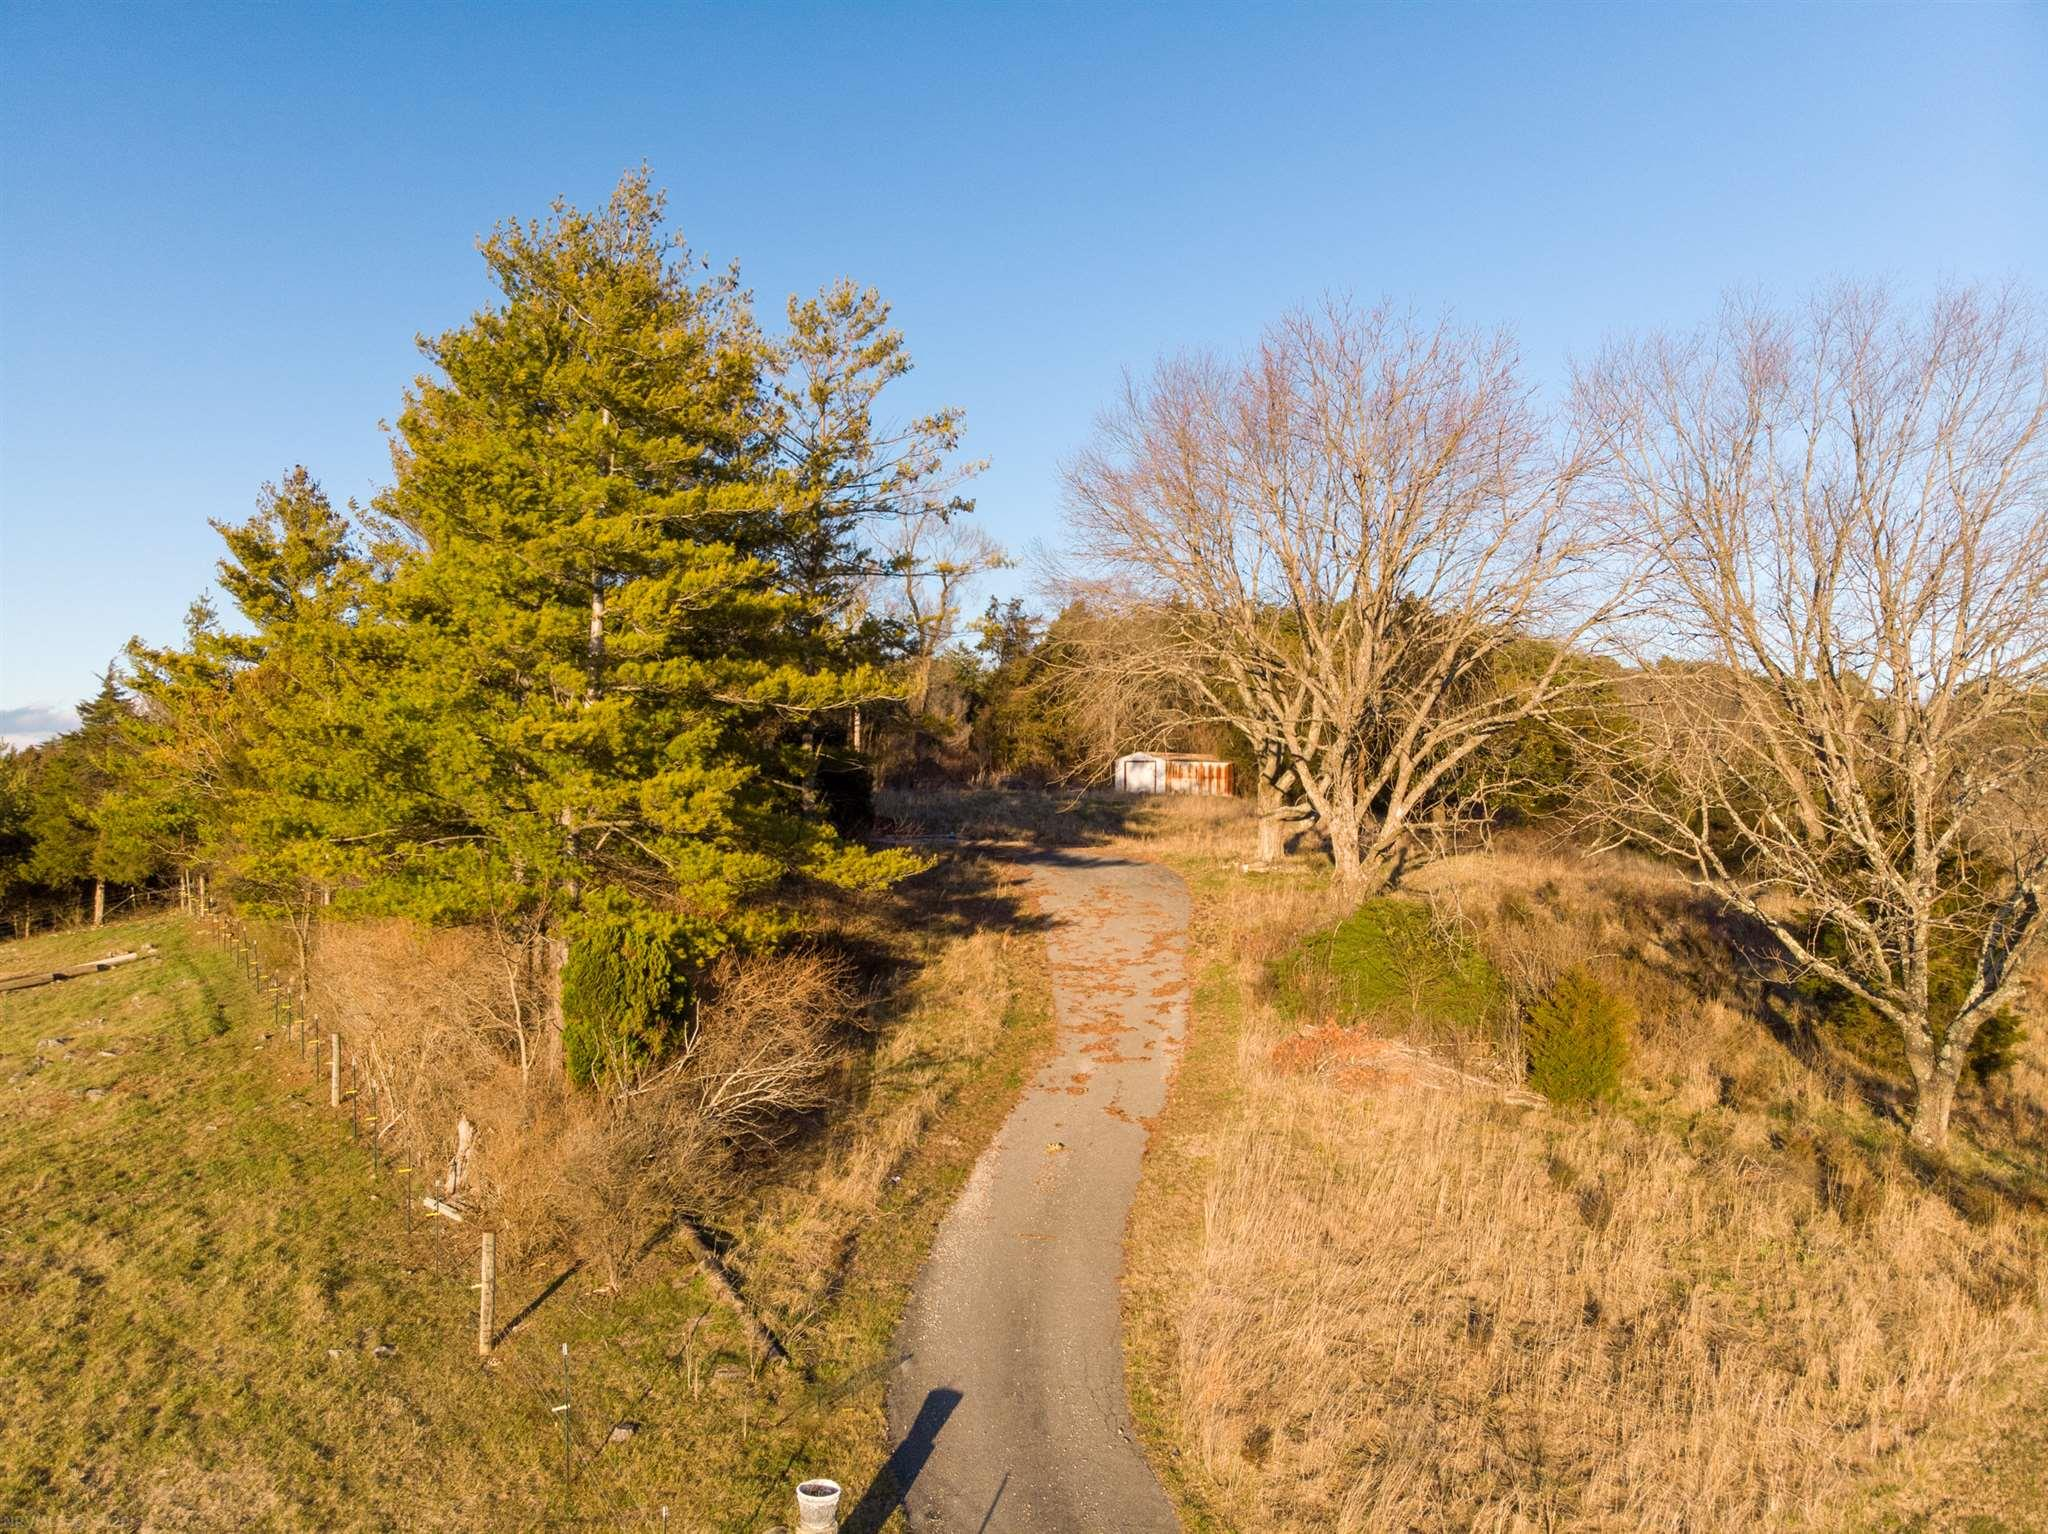 Amazing, majestic views await on this peaceful 1.5+ acres overlooking the area with paved driveway and septic. This property is located close to many amenities yet has a rural charm to it. Build your dream home on this lovely parcel of land.